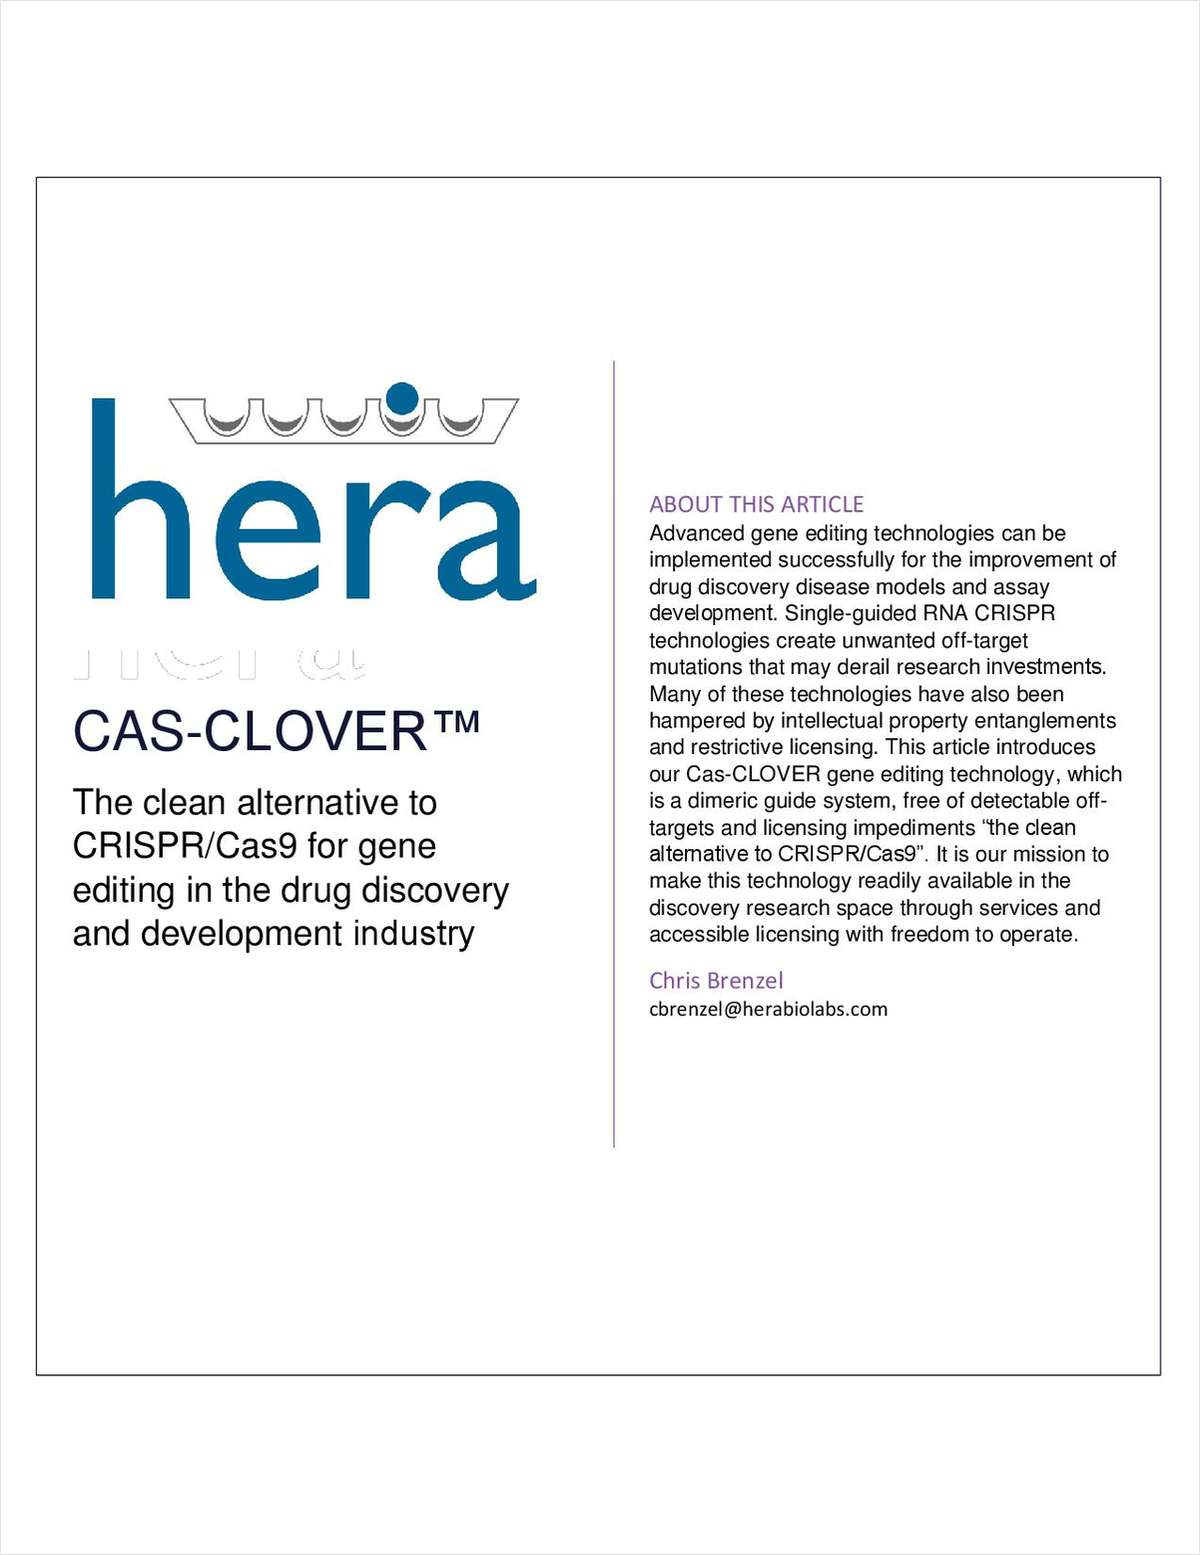 CAS-CLOVER The clean alternative to CRISPR/Cas9 for gene editing in the drug discovery and development industry